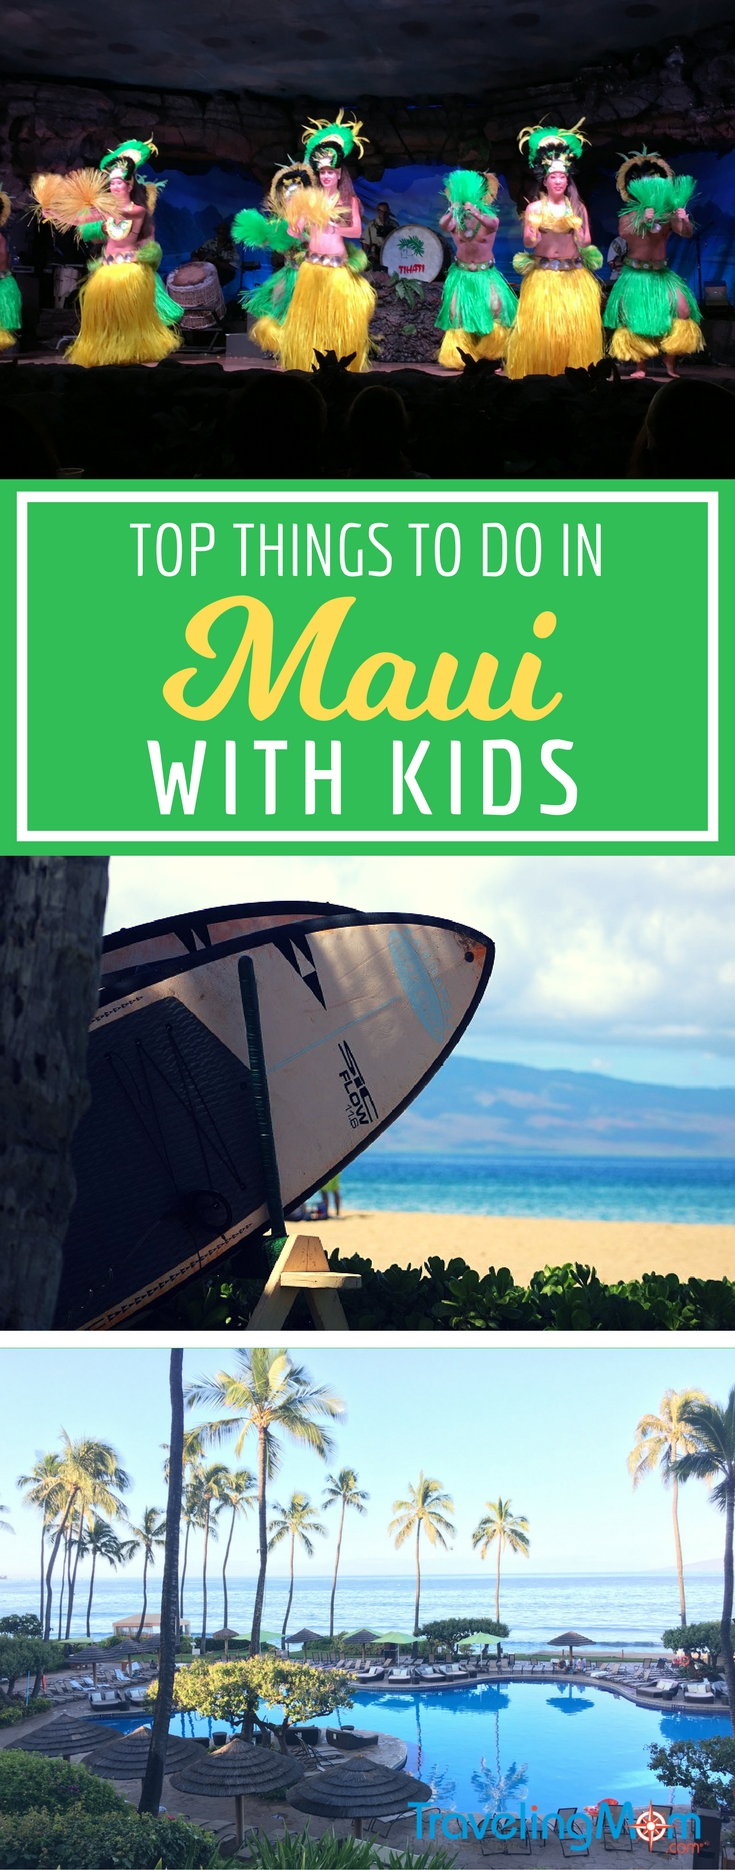 When planning a family vacation to Maui, Hawaii, don't miss out on these top 9 things to do on Maui with kids!